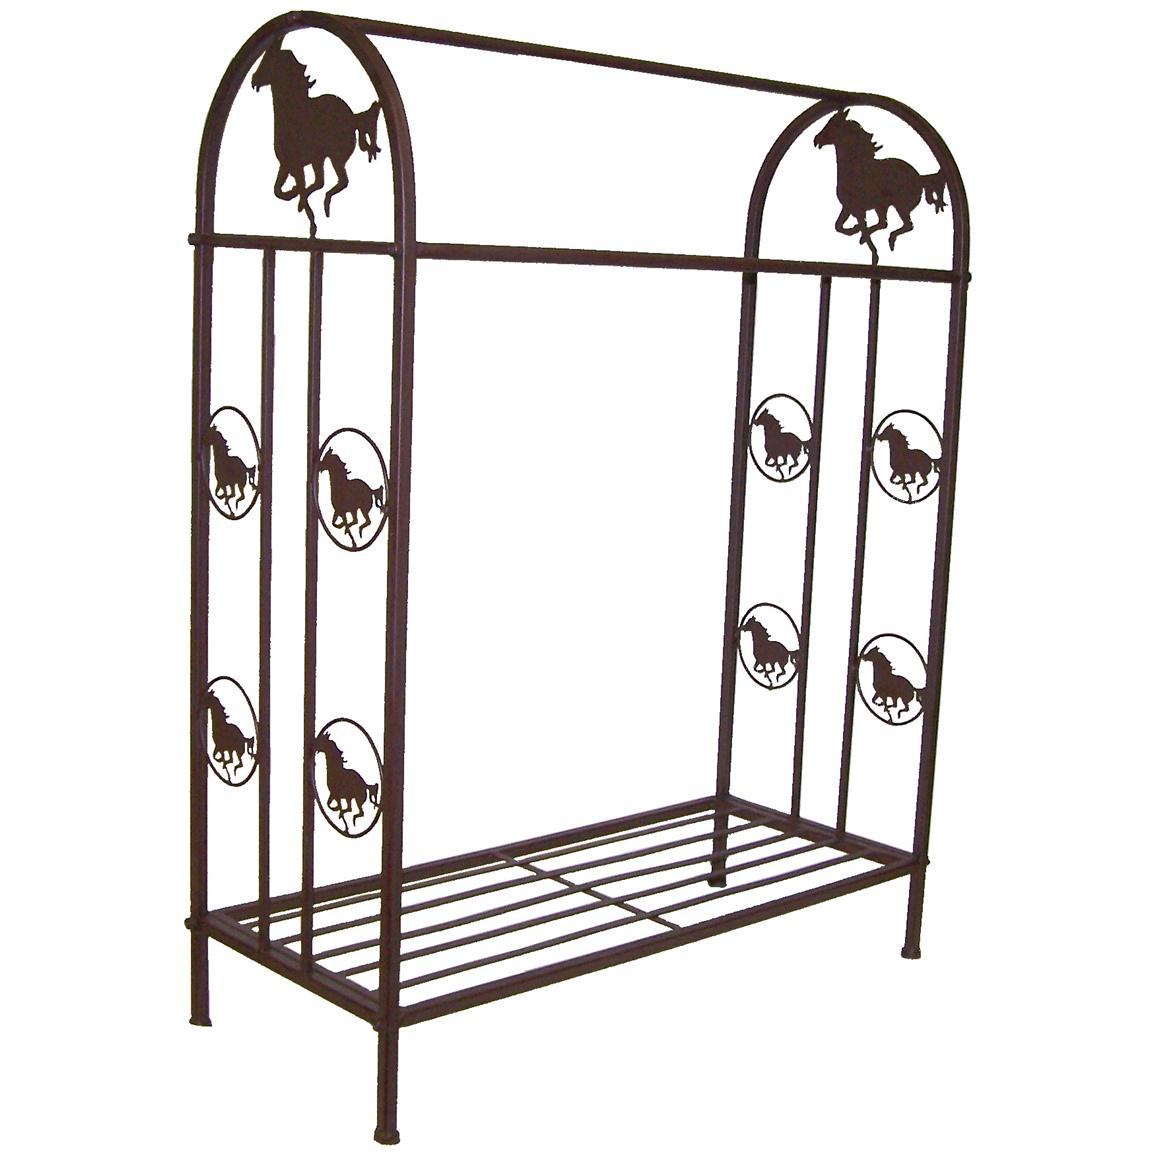 DeLeon Collections Metal Quilt Rack with Horse Design